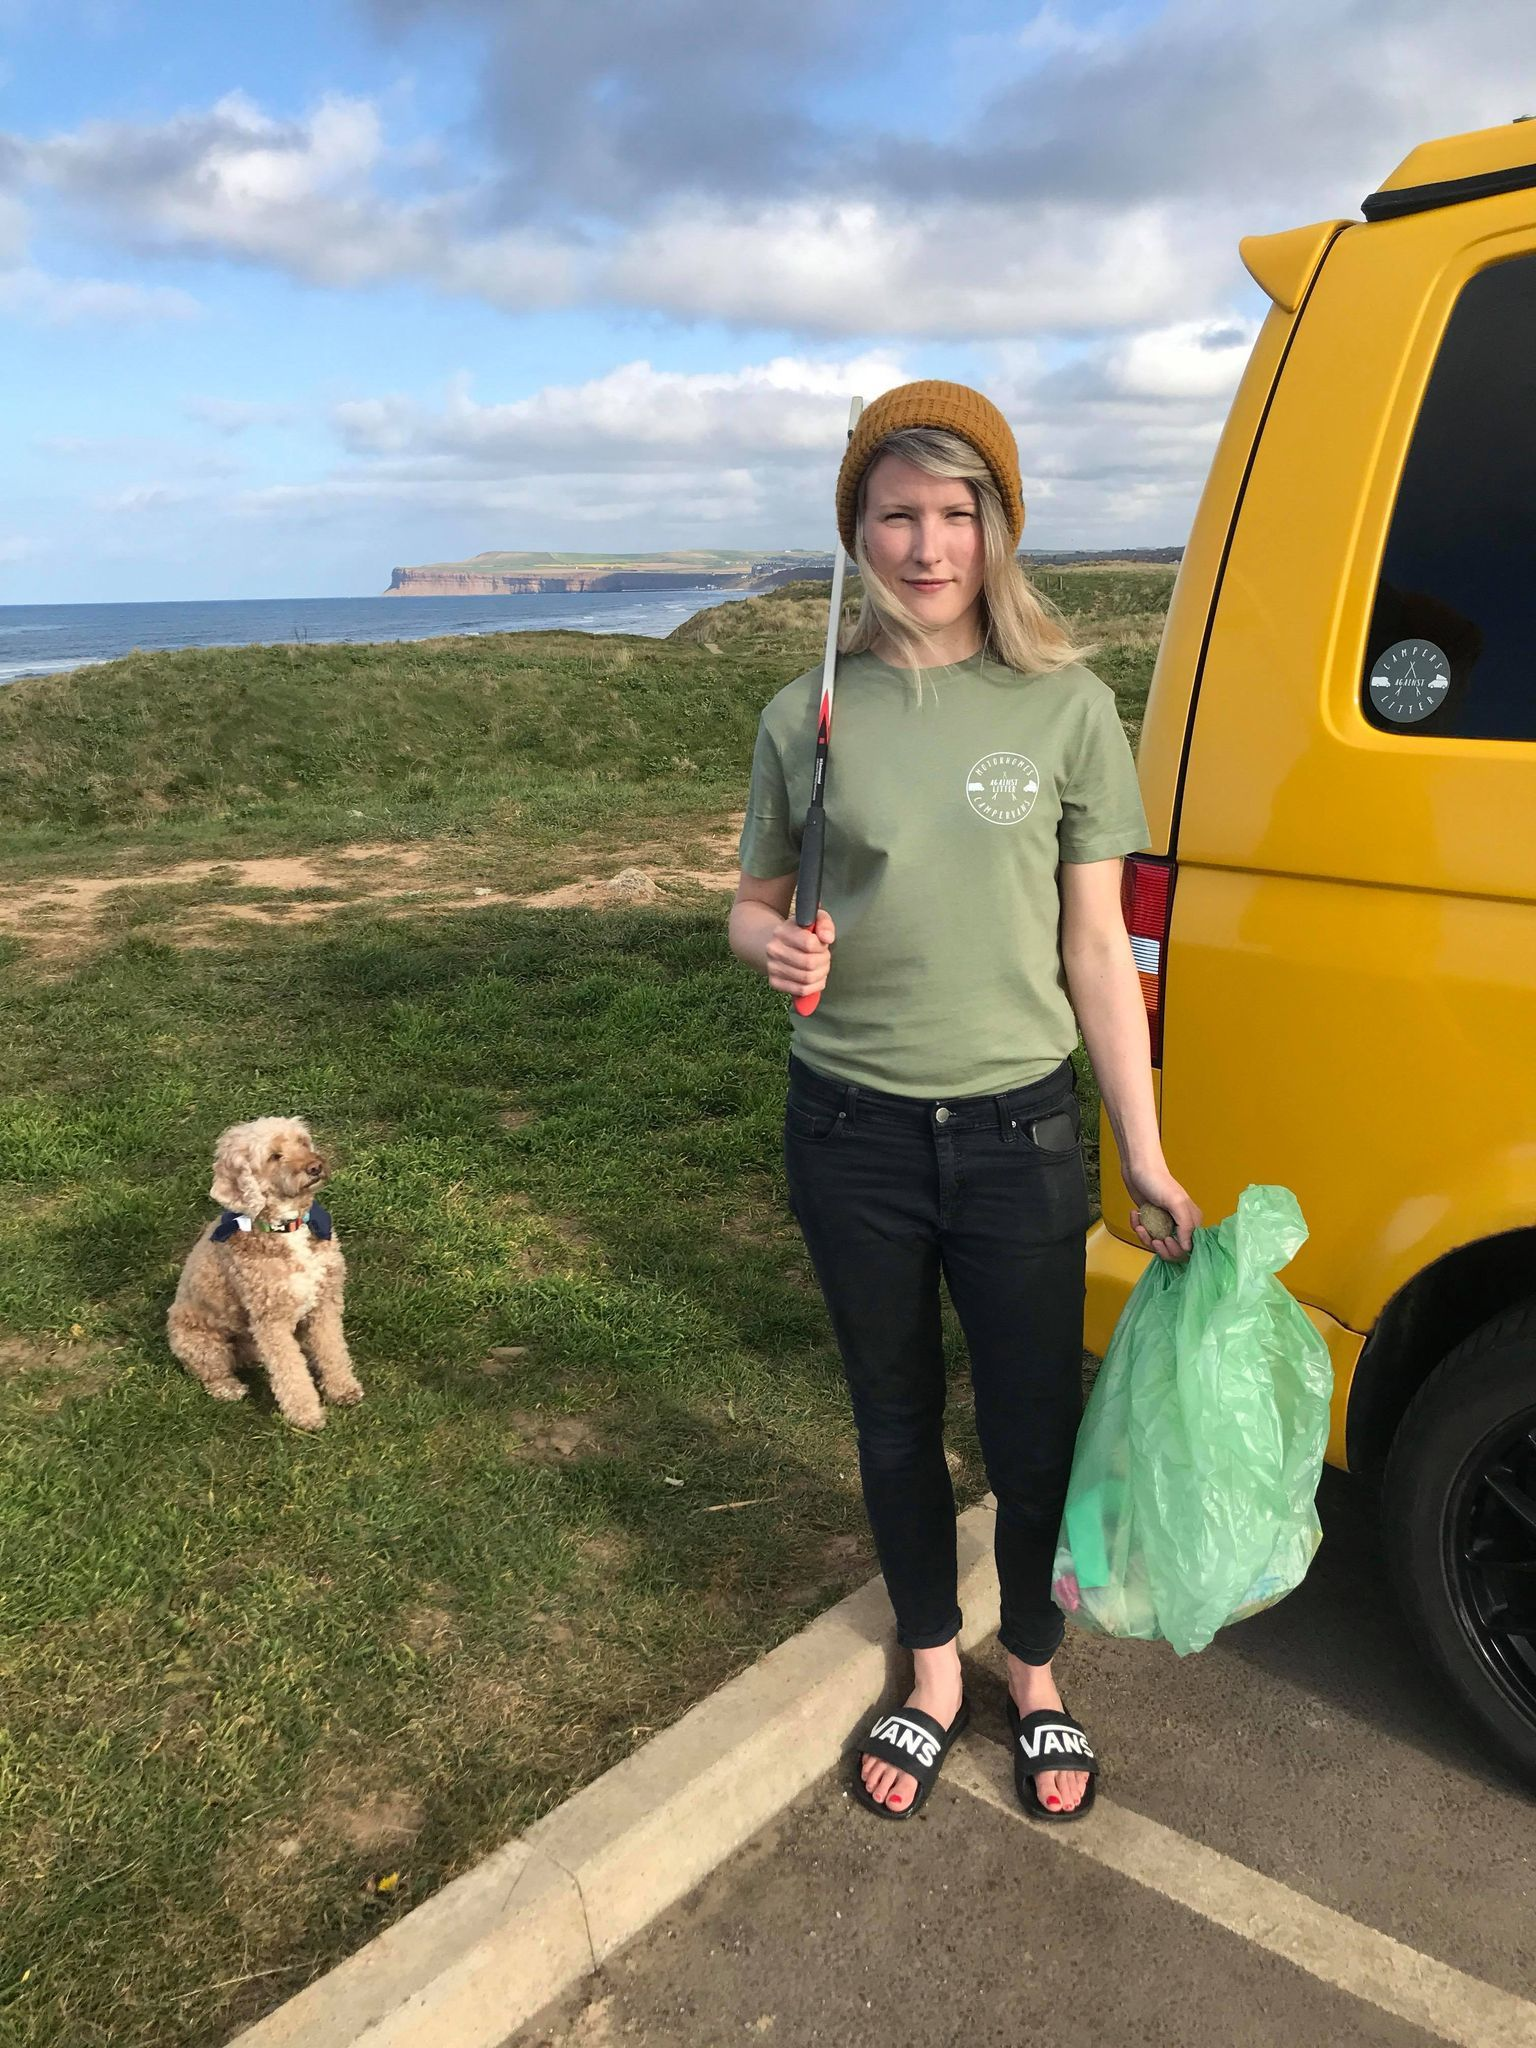 North-East woman launches campaign urging campervans litter pick